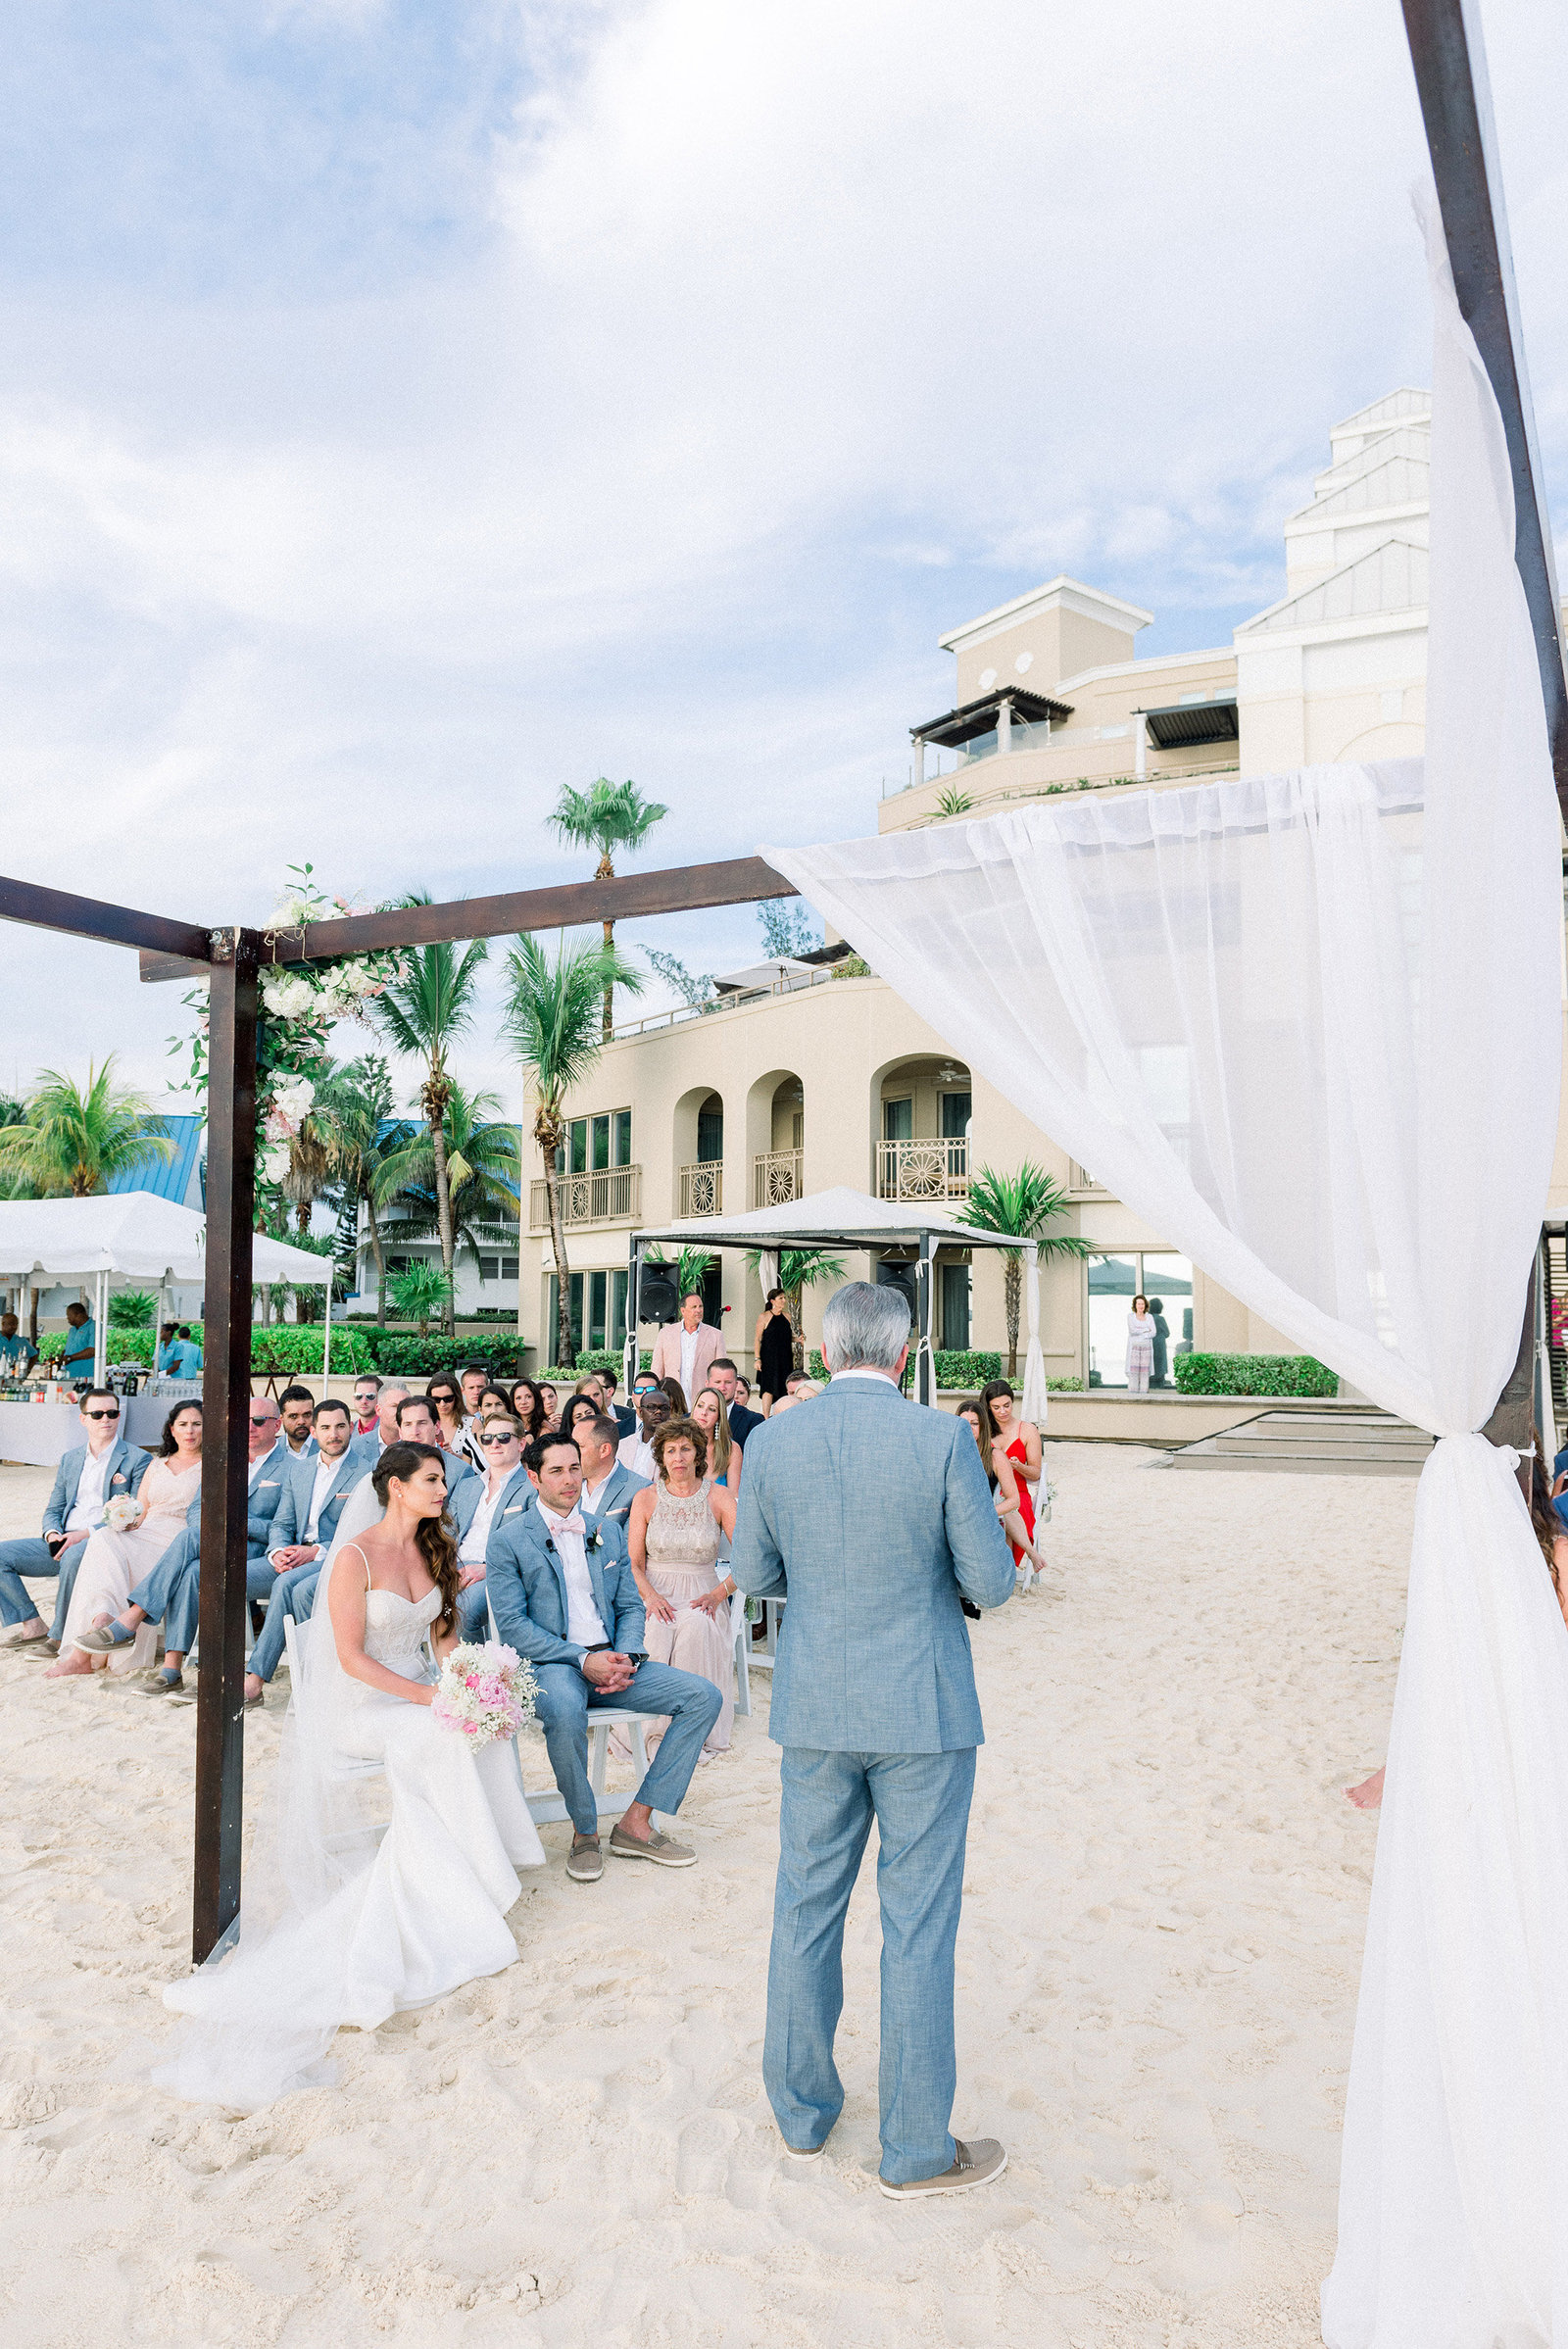 20180512-Pura-Soul-Photo-Ritz-Grand-Cayman-Wedding-86